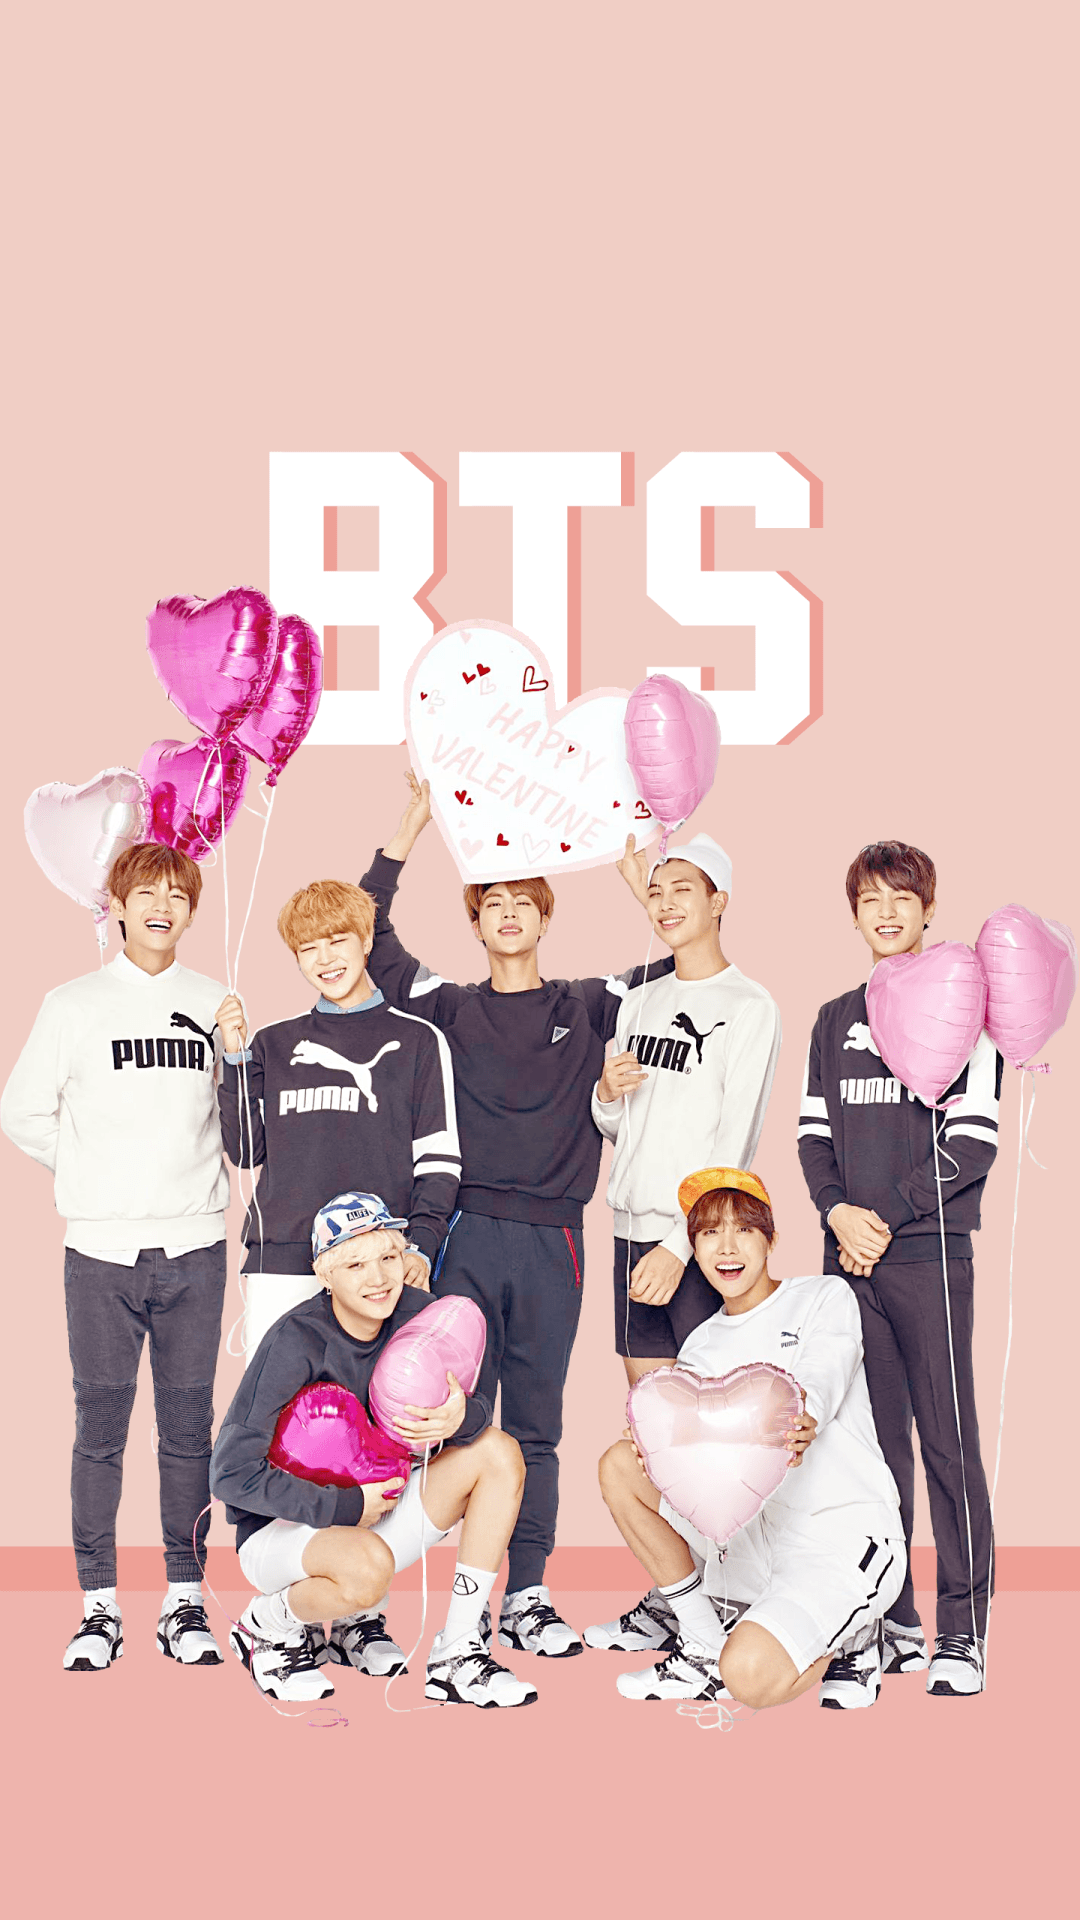 BTS iPhone Wallpapers - Top Free BTS iPhone Backgrounds